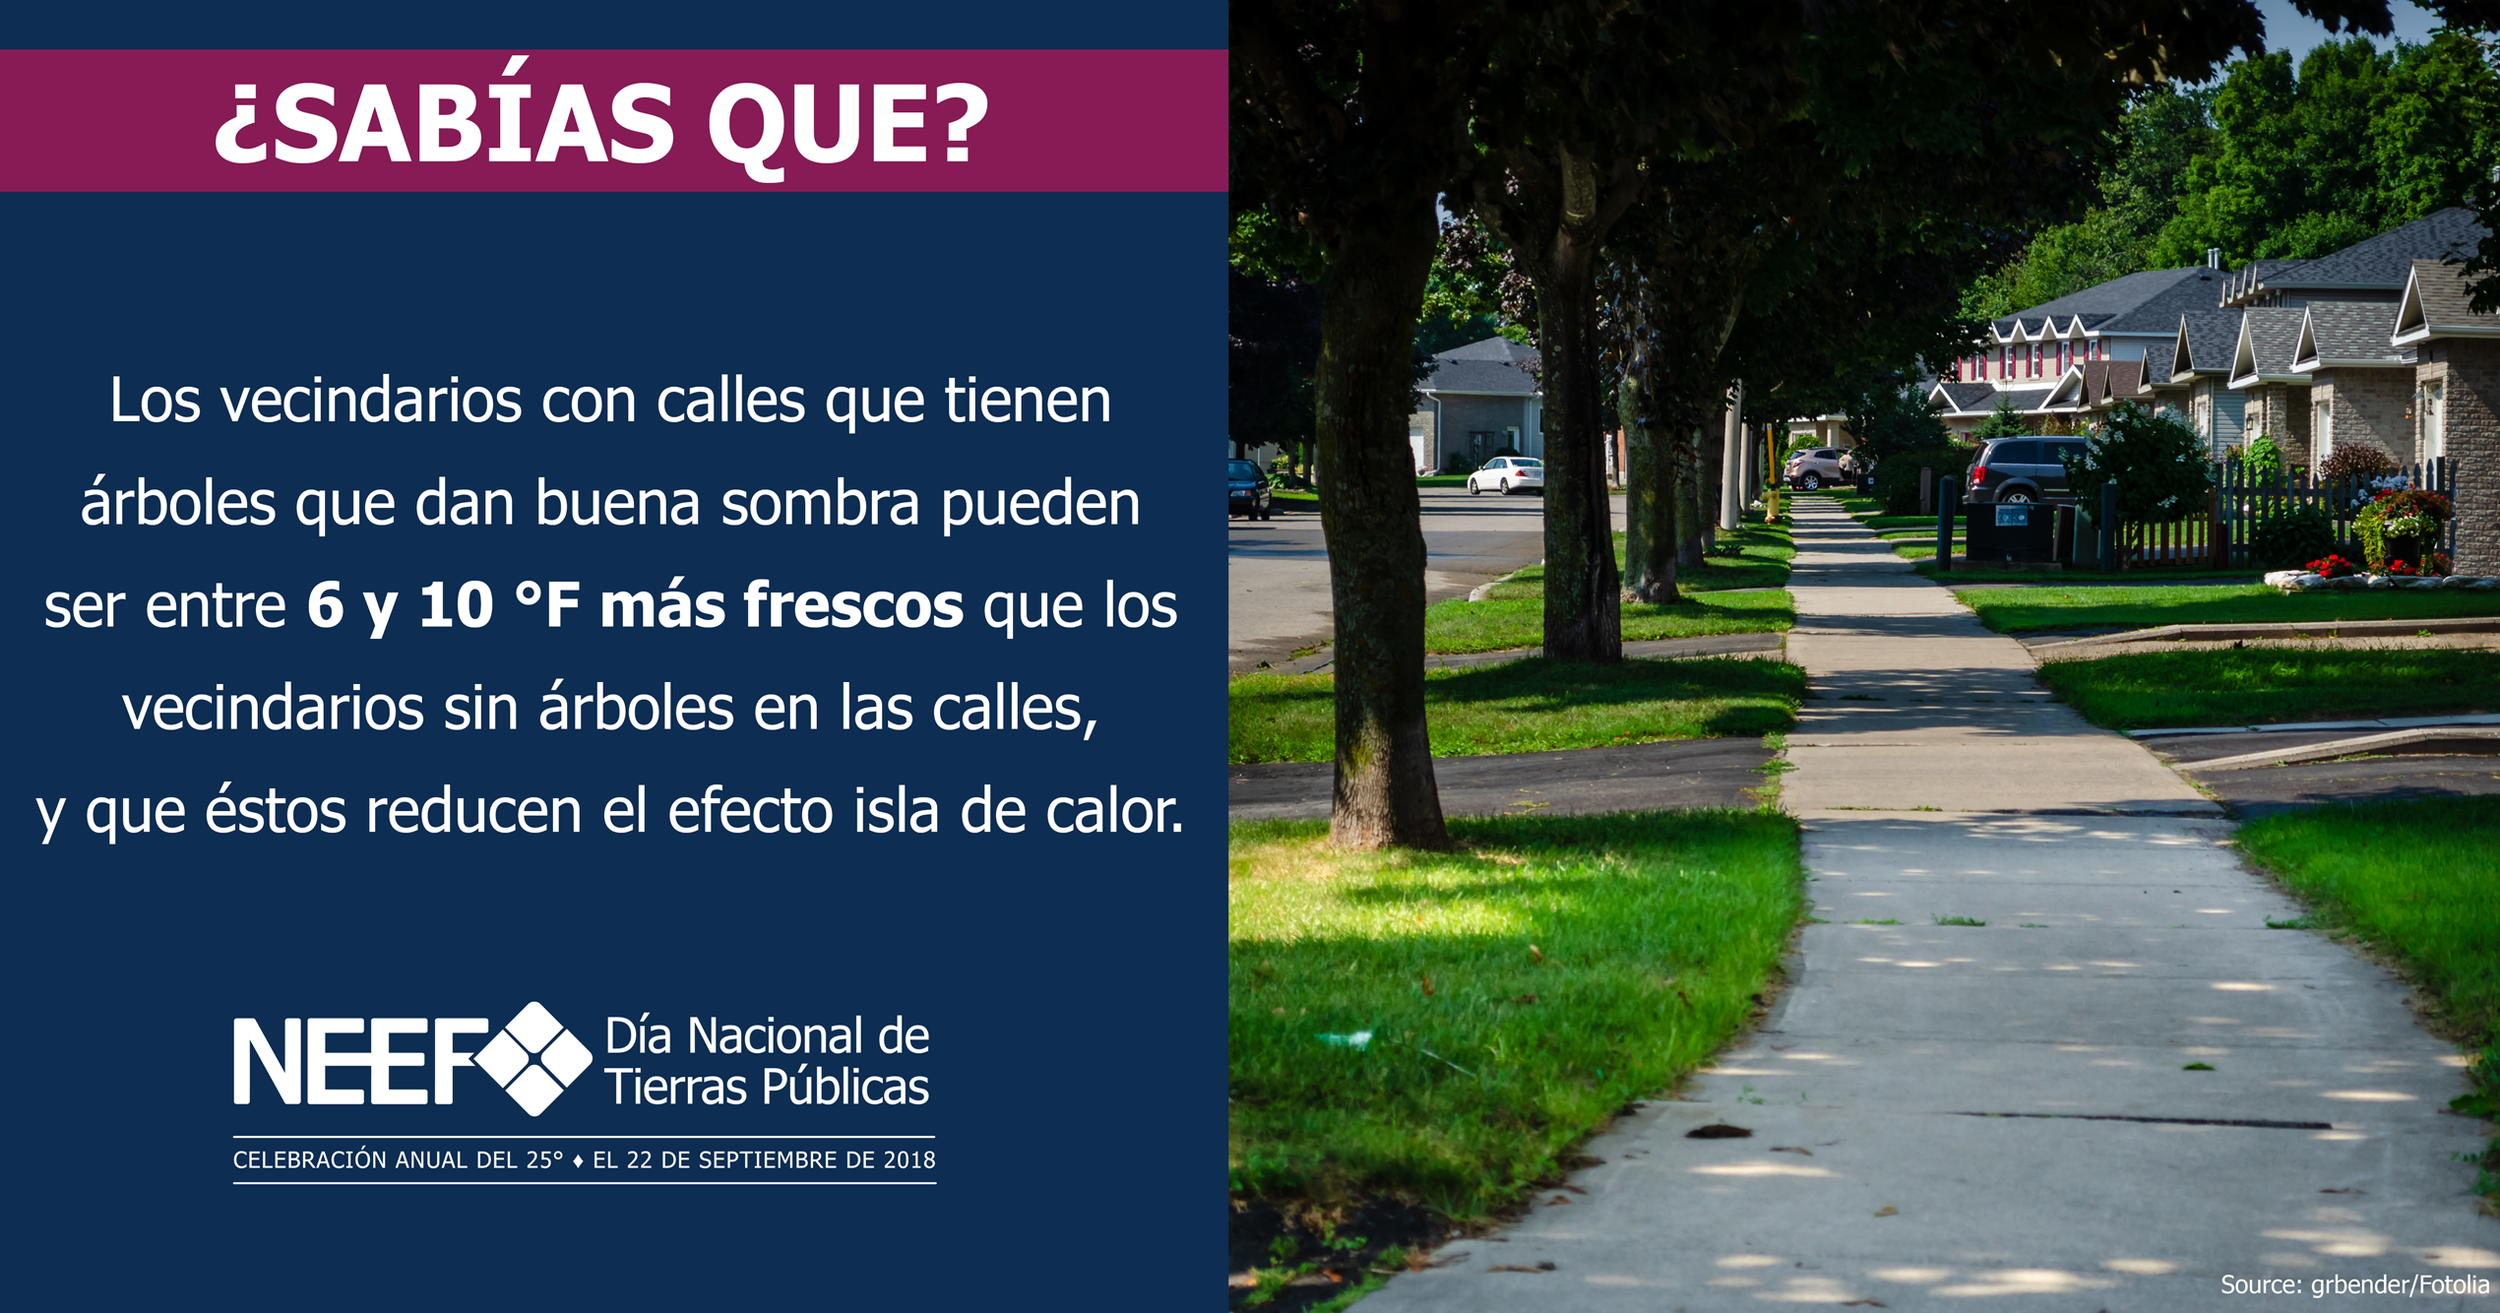 SOCMED18-NPLD-FunFacts-ShadyTrees-Spanish-2540x1334.png